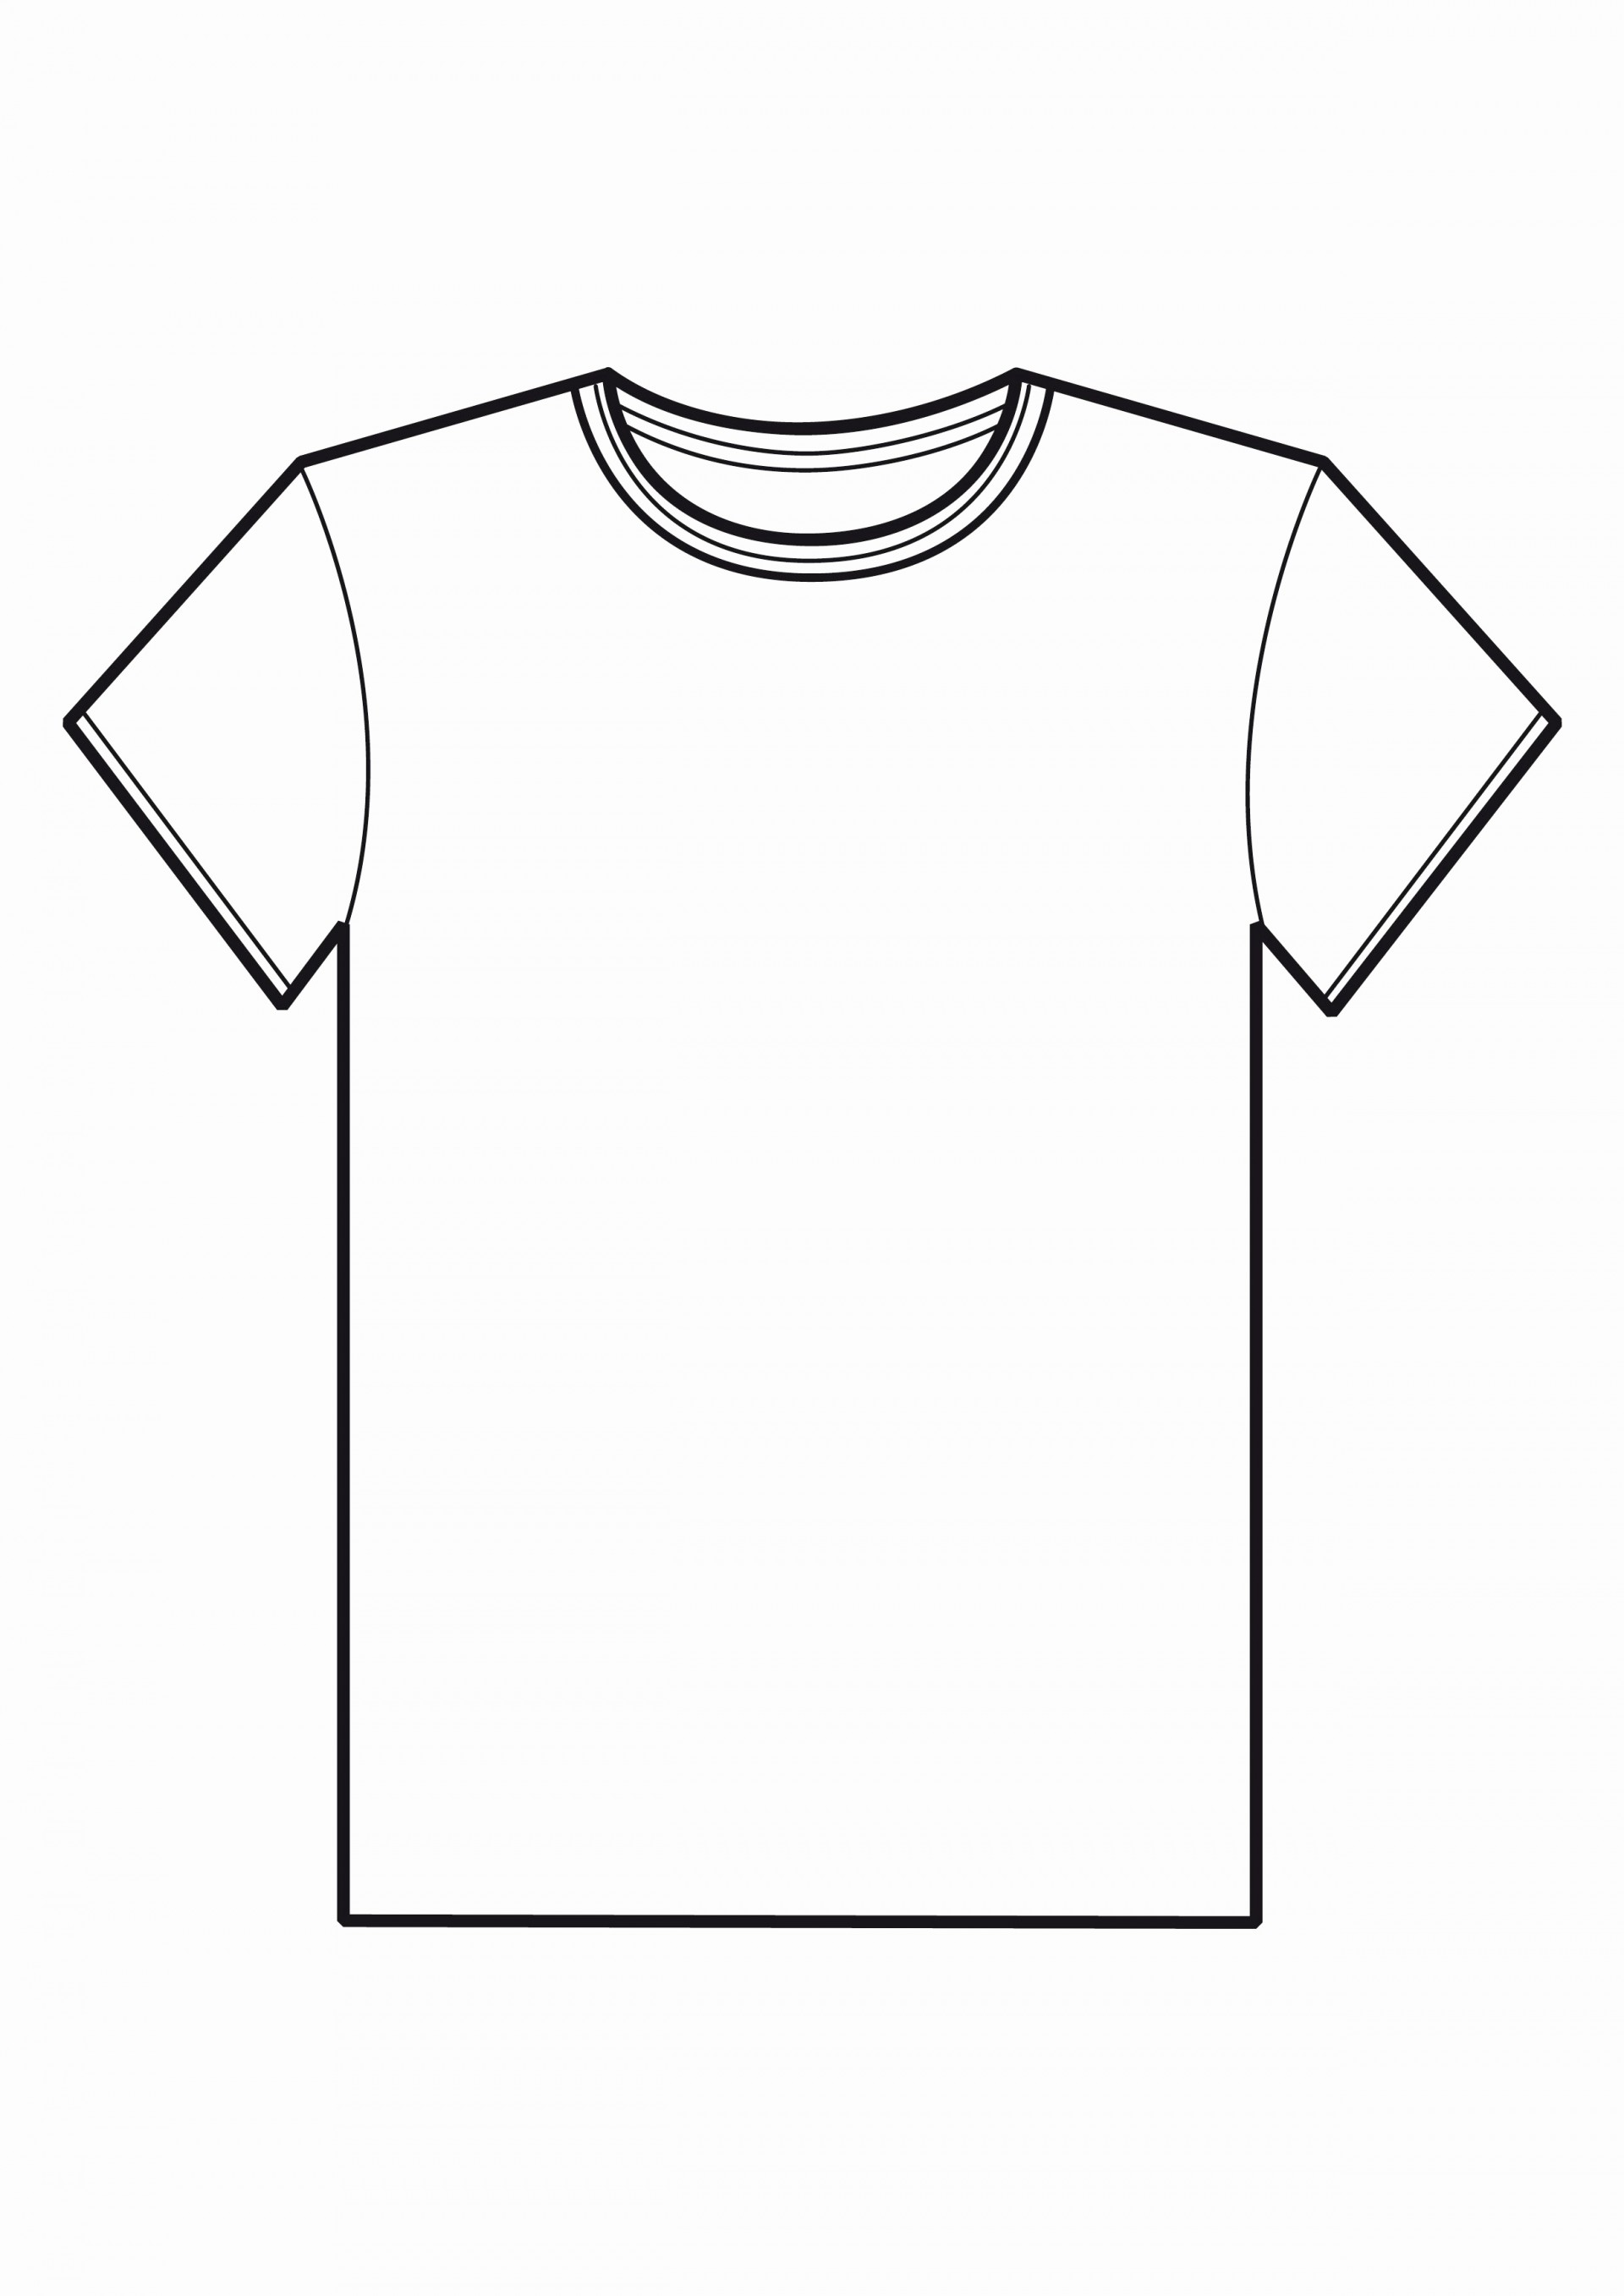 T shirt mockup clipart banner library download 013 White T Shirt Design Template Vector Ideas Excellent ... banner library download